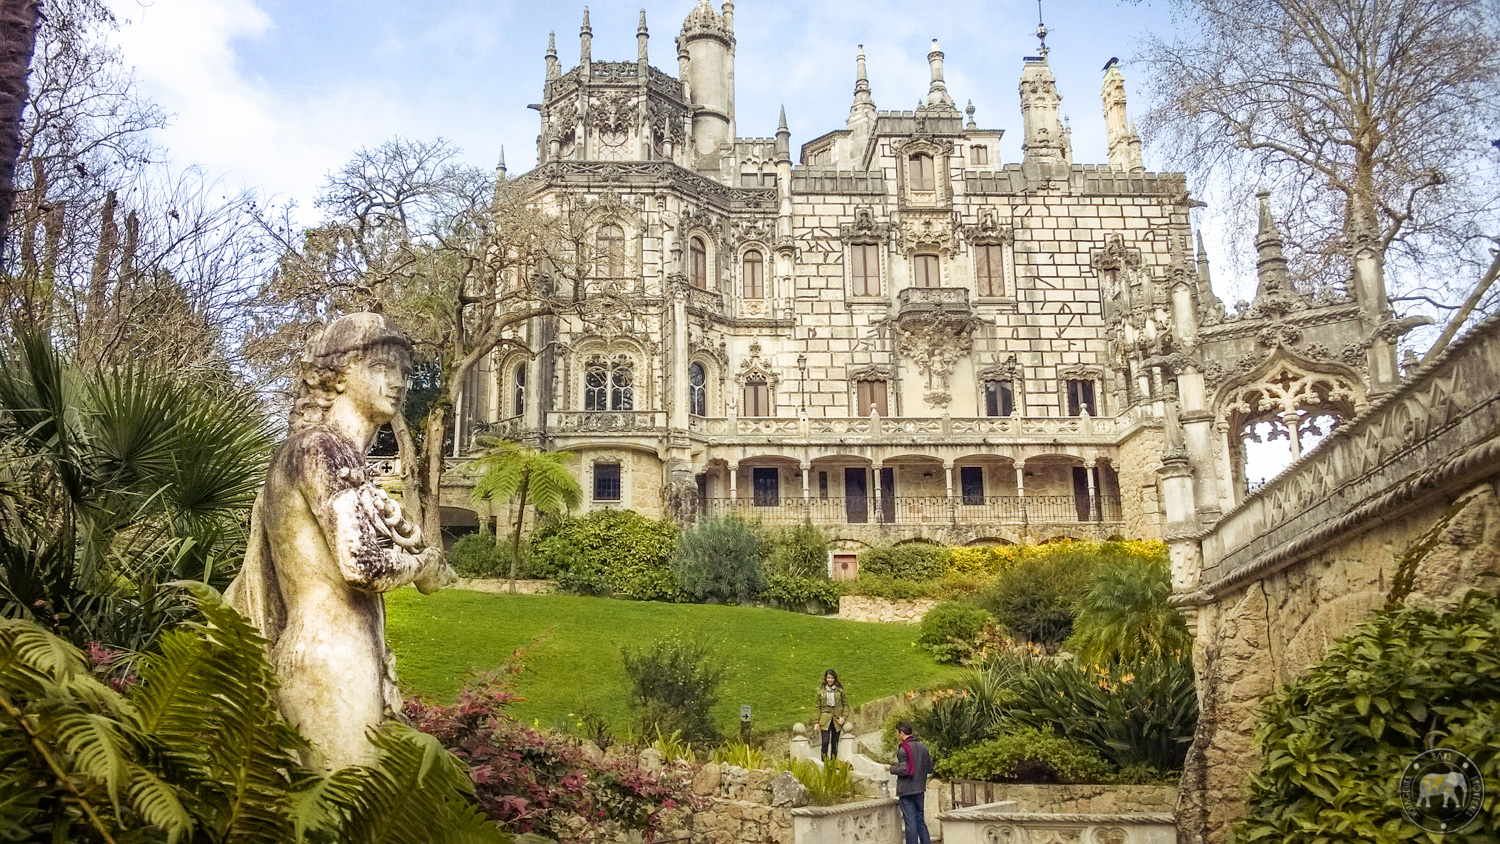 Regaleira palace at the Quinta da Regaleira - Sintra, Portugal